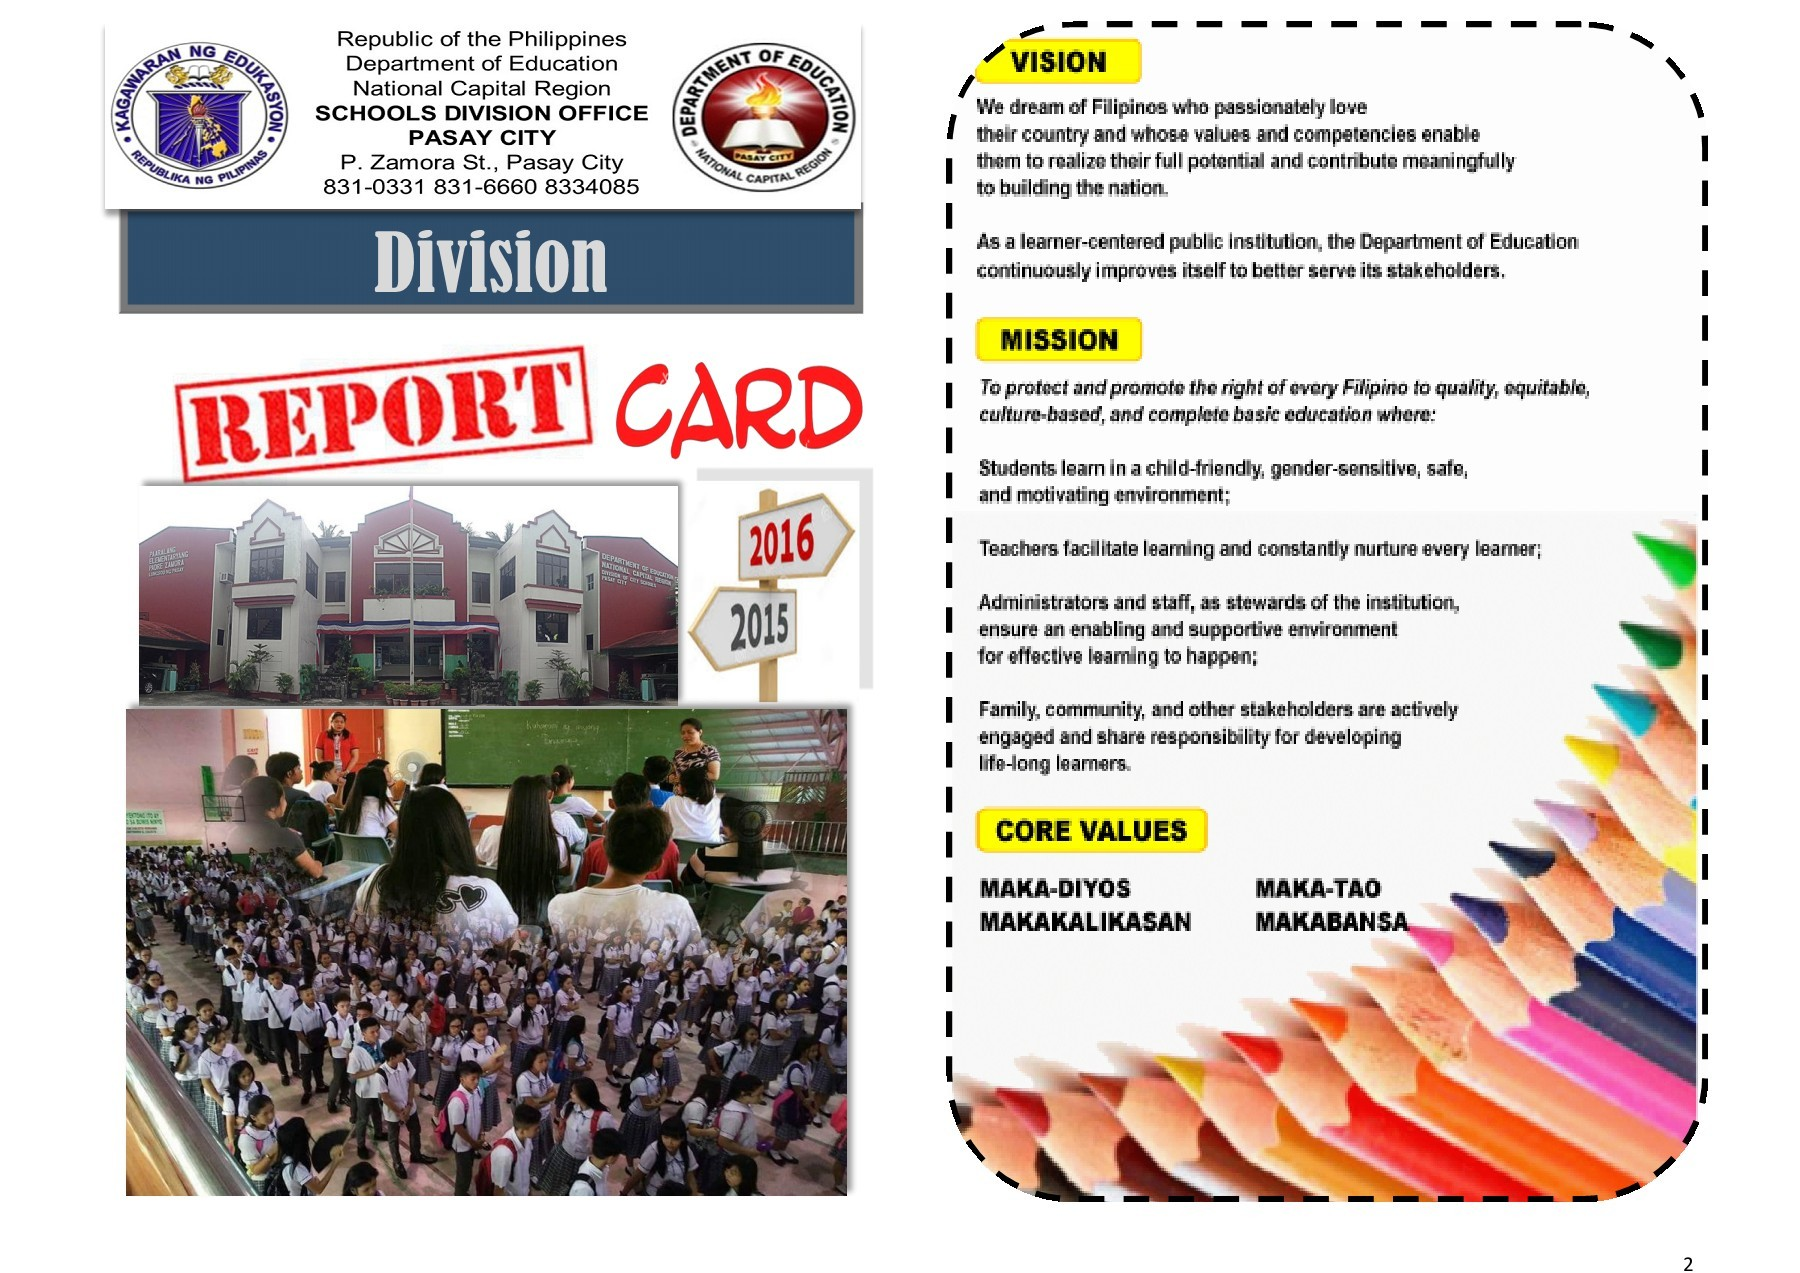 deped school report card 2018  Division Report Card – DepEd Pasay City